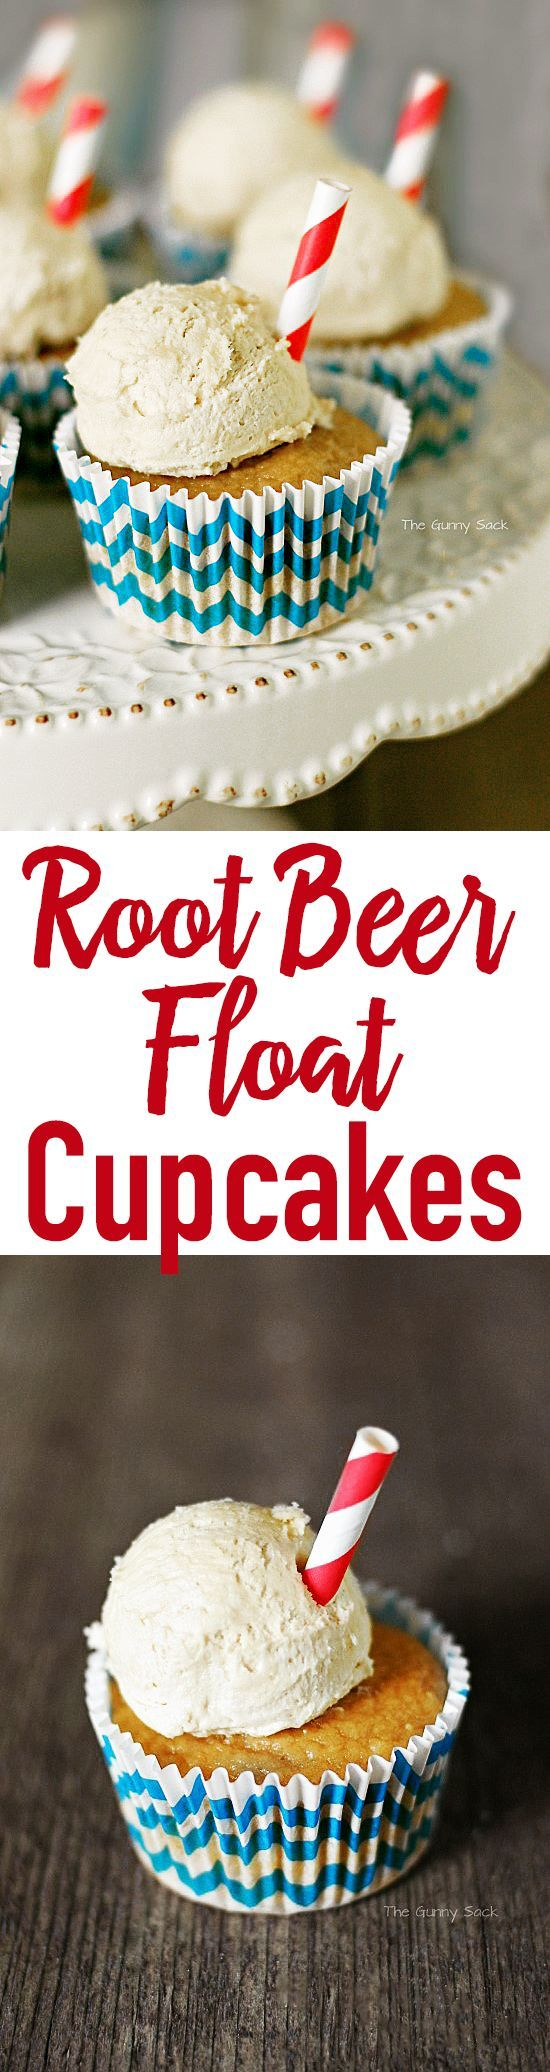 Root Beer Float Cupcakes | The Gunny Sack